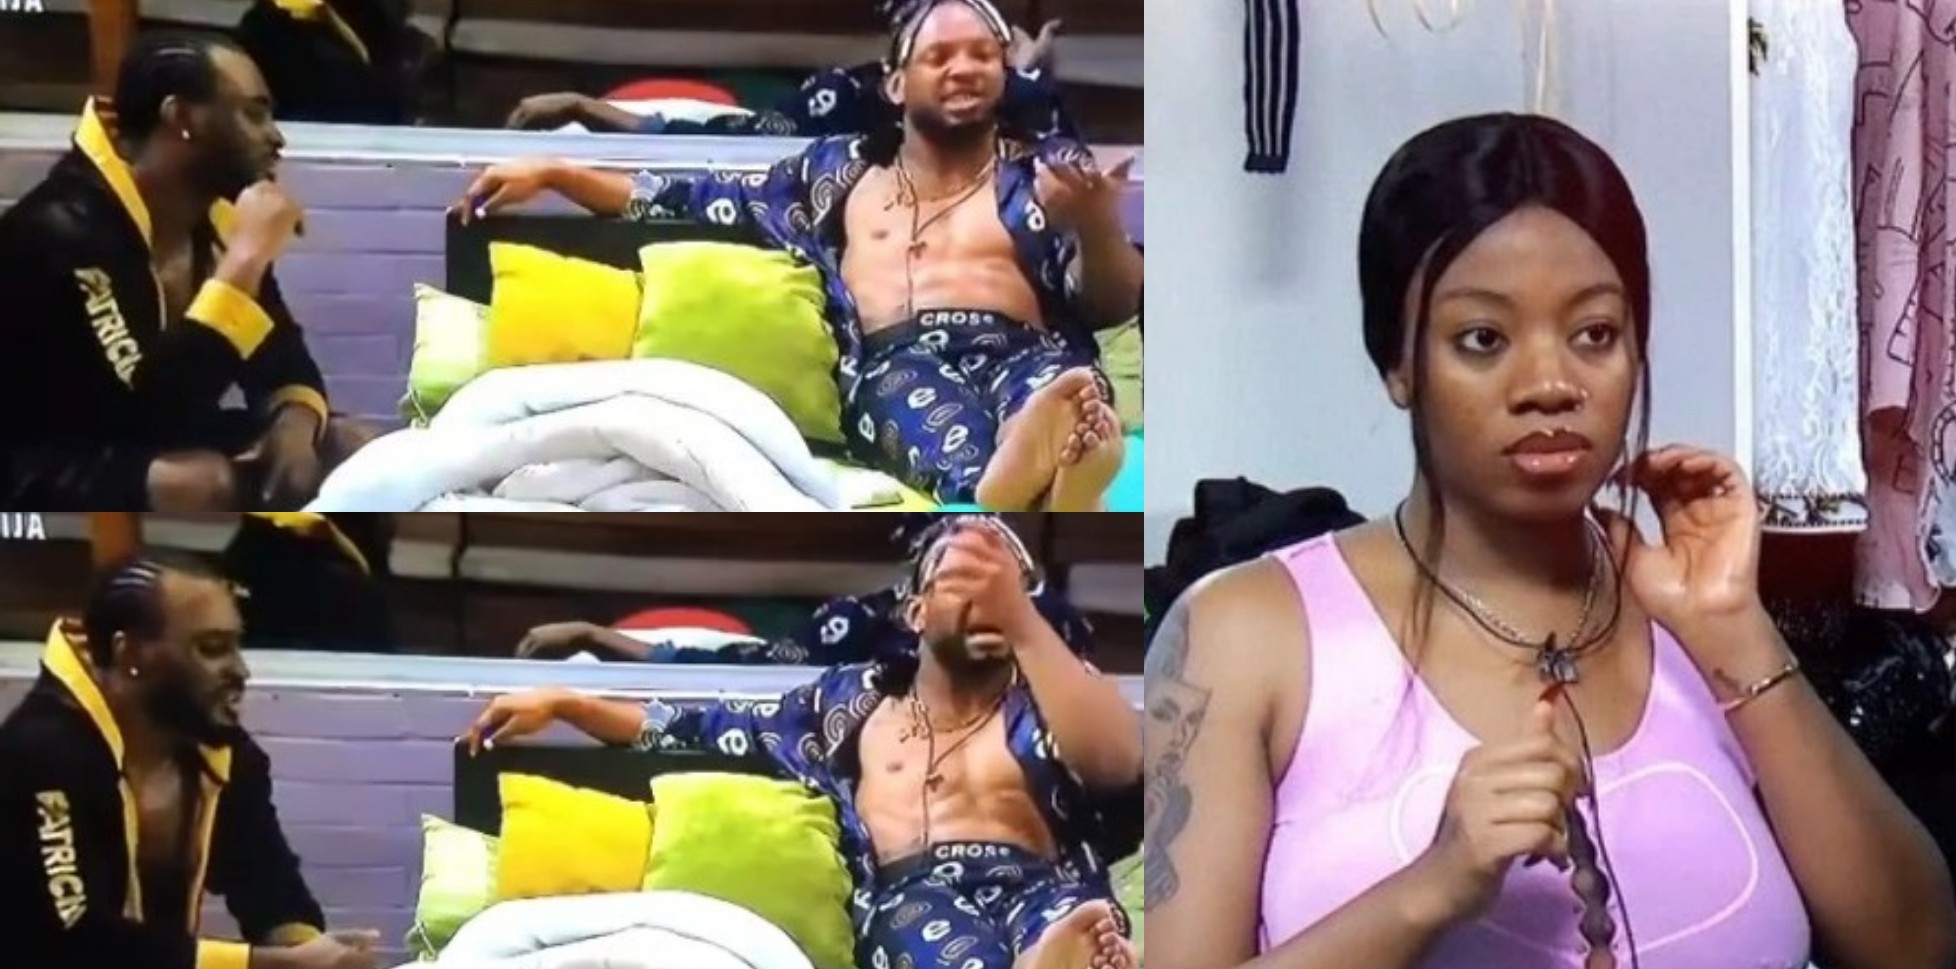 VIDEO: Cross and Pere Discuss How Angel Is Manipulative